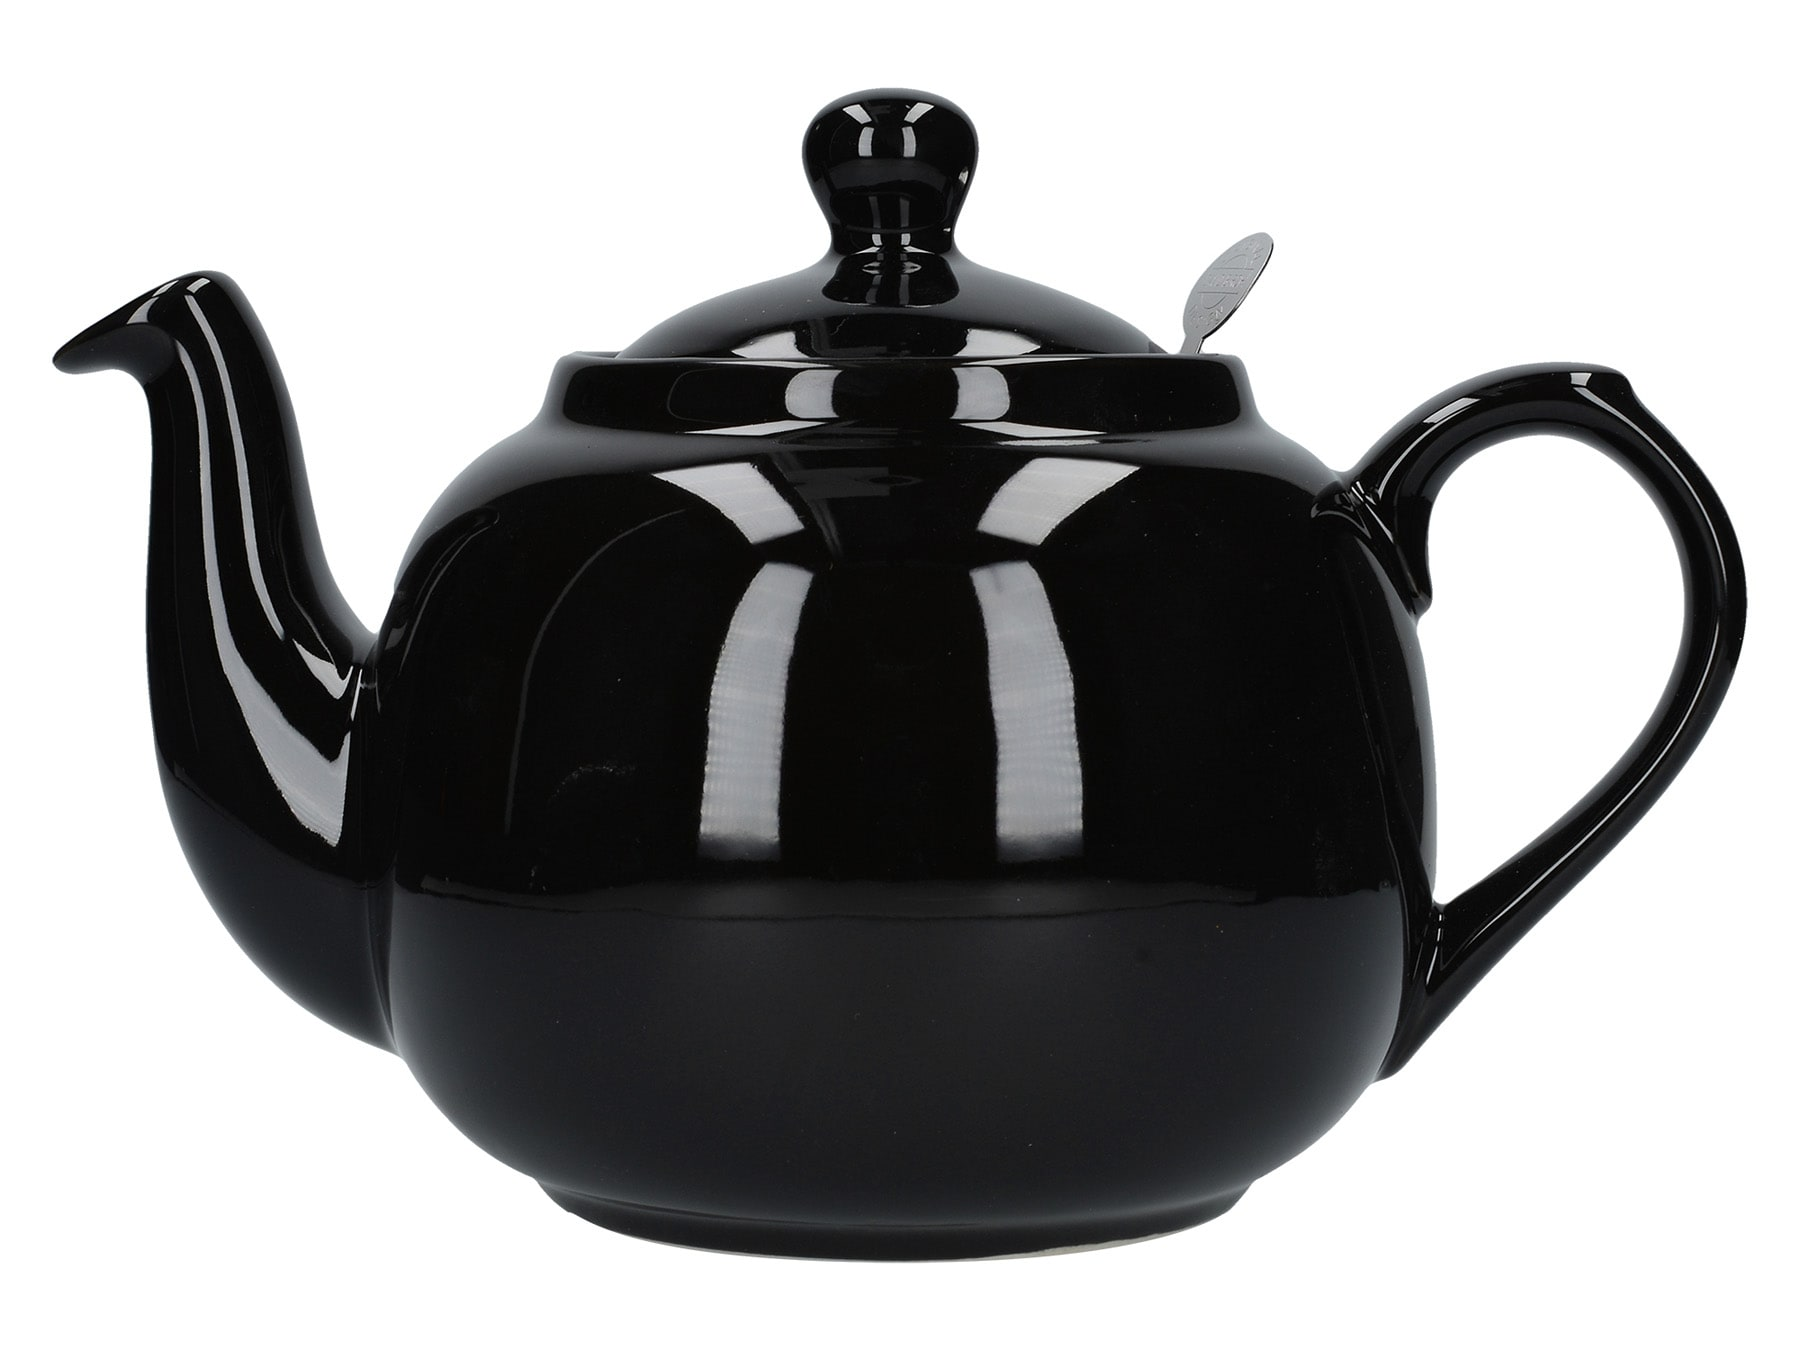 London Pottery Farmhouse 6 Cup Teapot Gloss Black